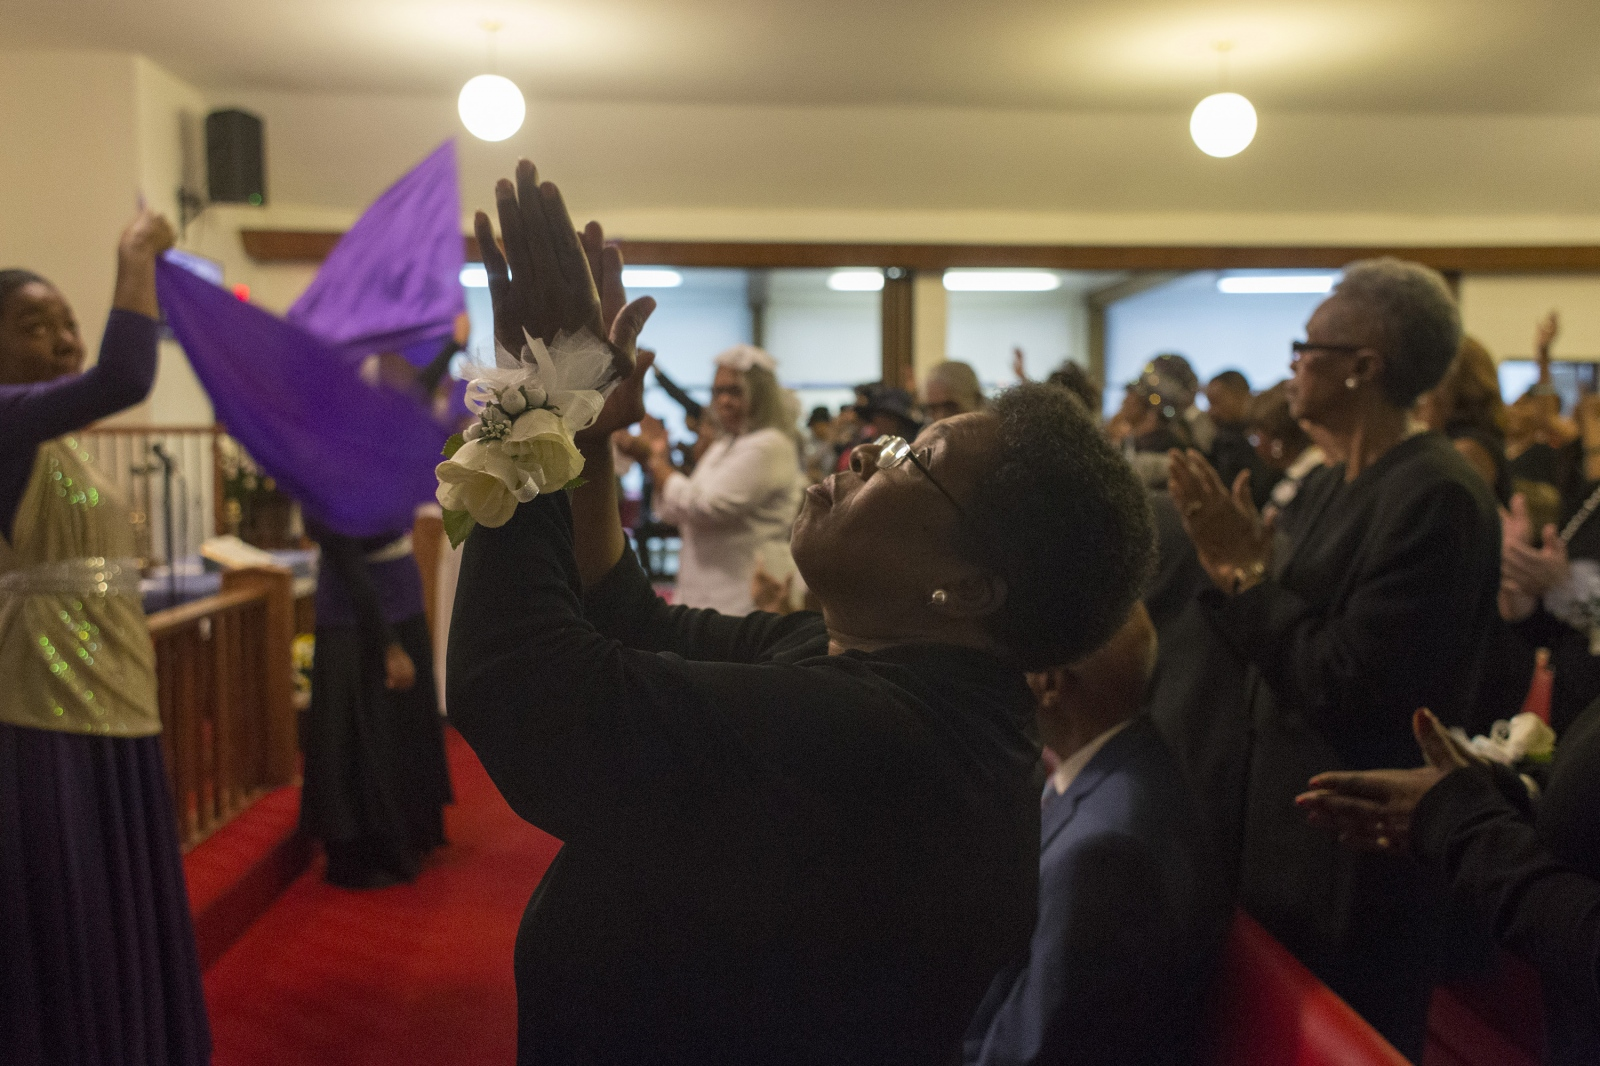 St. Paul African Methodist Episcopal or AME choir director Debra Williams, of Detroit, sends up praise during the church's dedication service in their new location in Grosse Pointe Park, Mich.